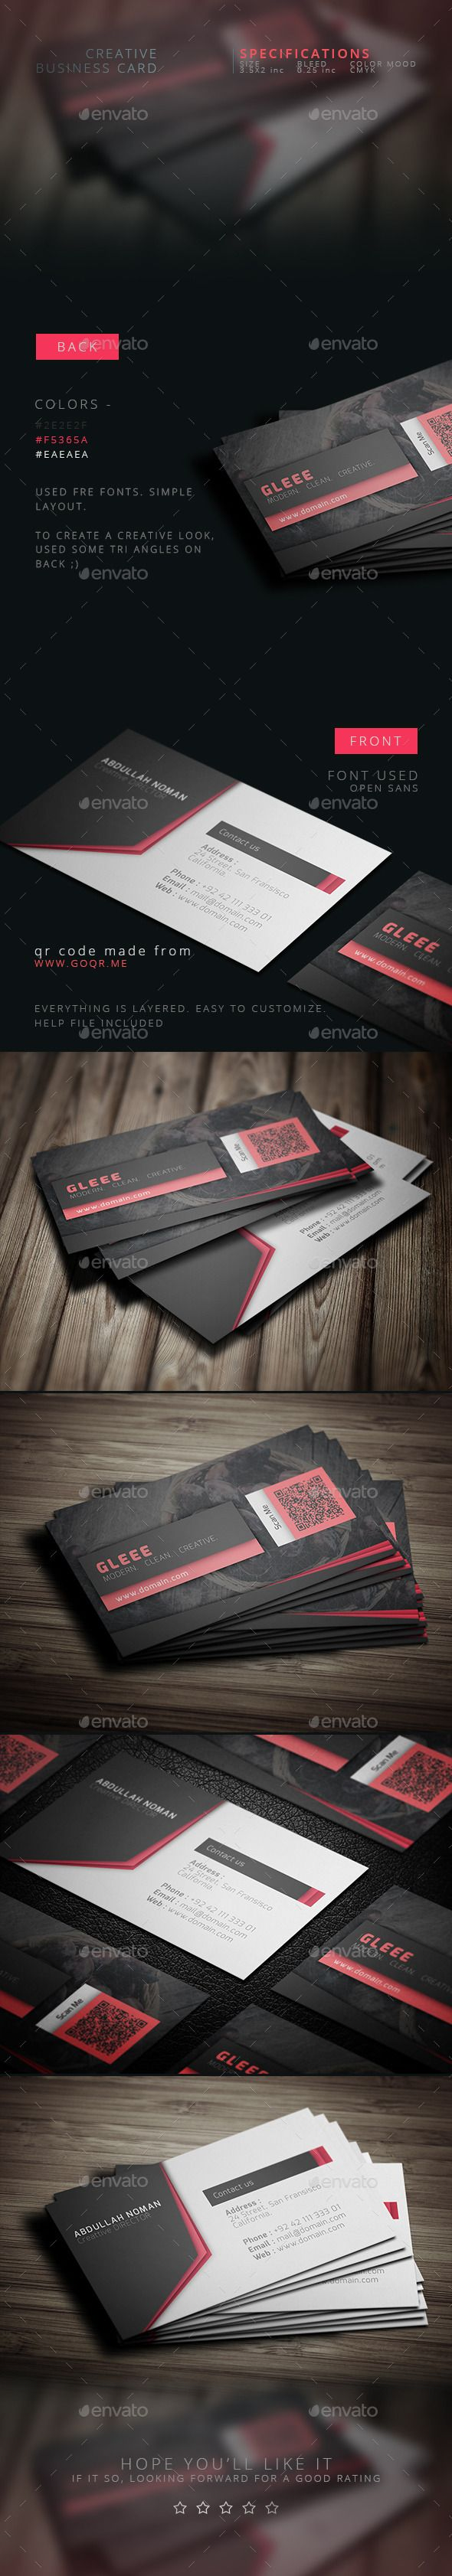 186 best business card templates images on pinterest